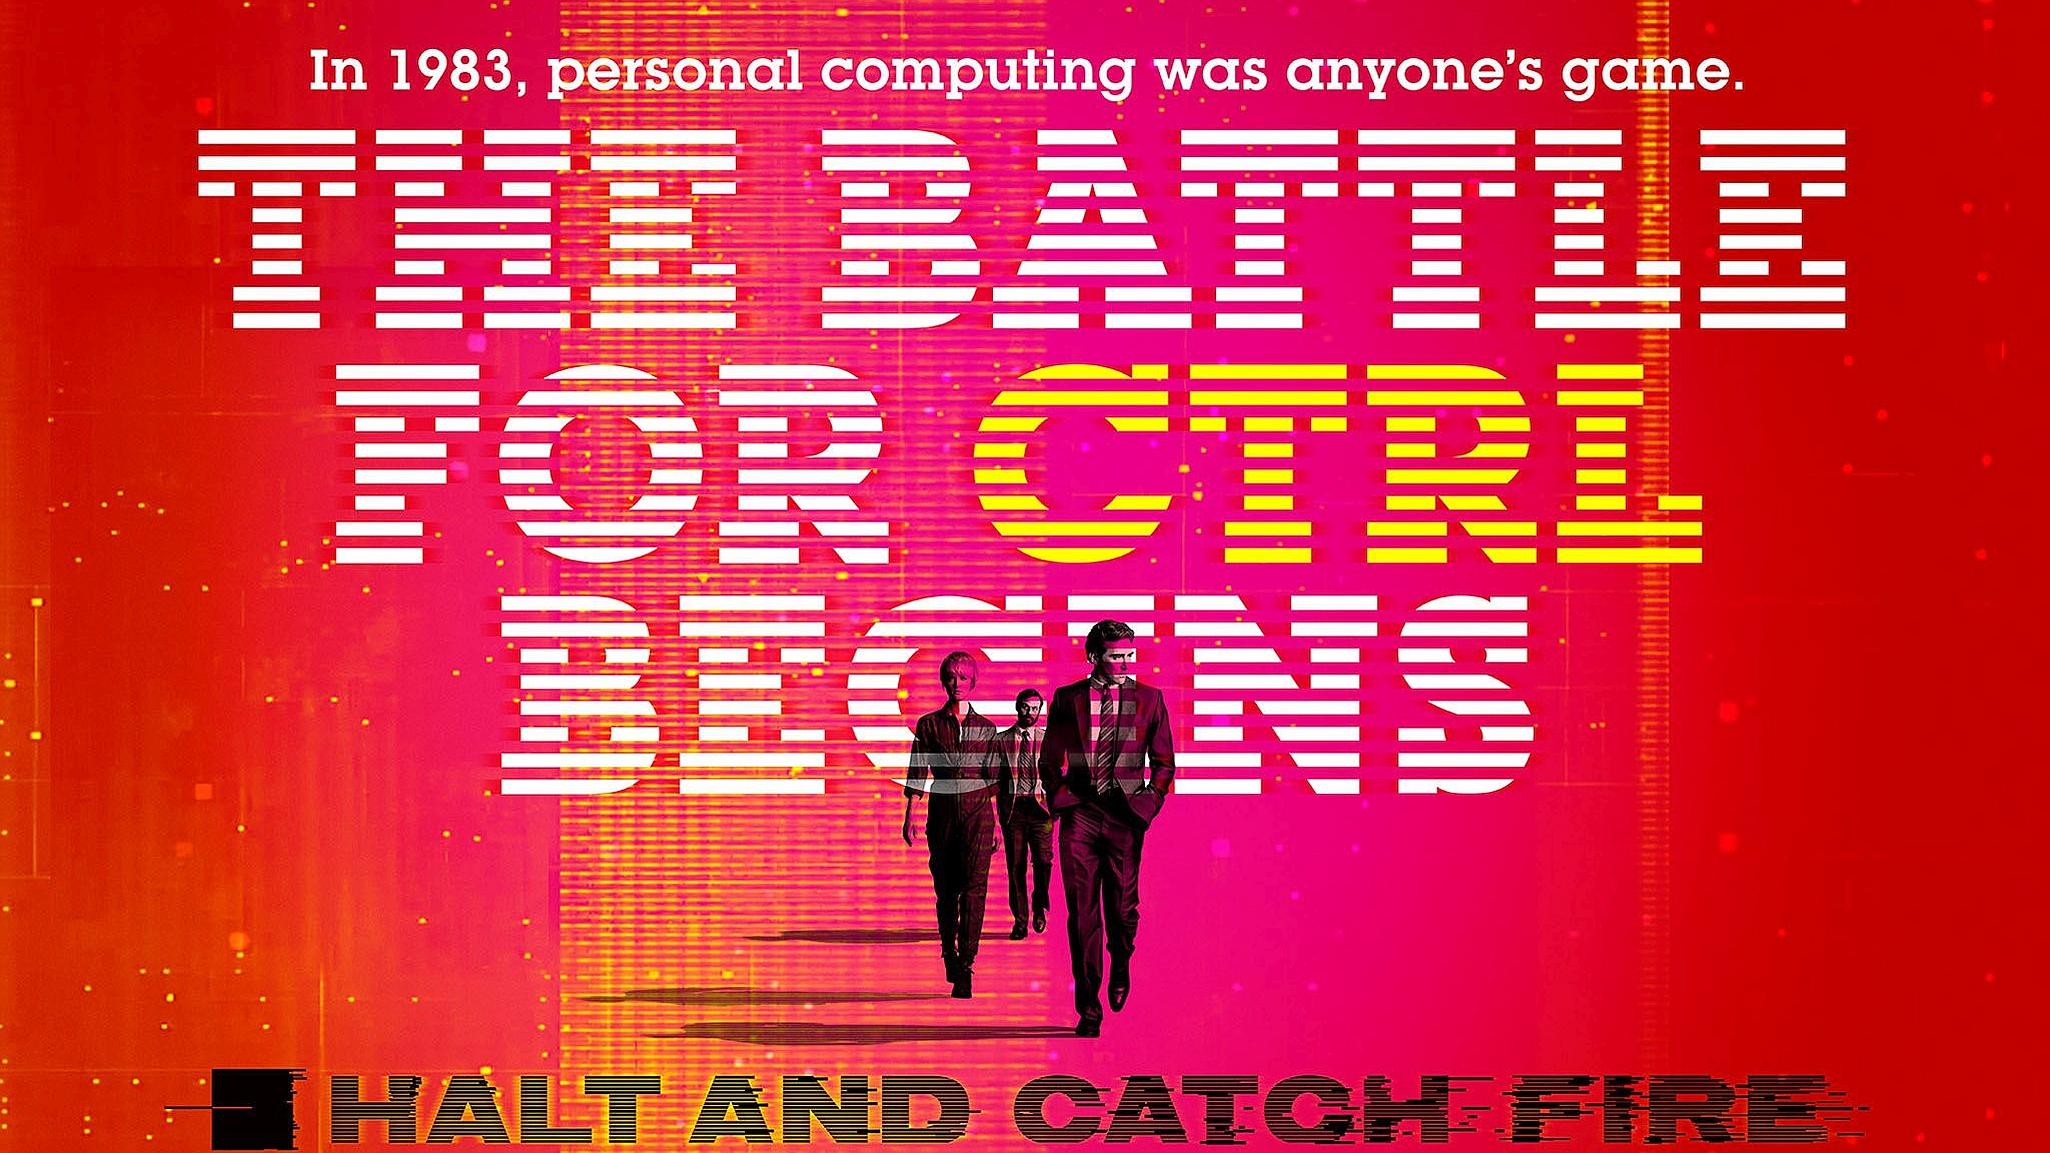 Halt And Catch Fire Hd Wallpaper Background Image 2050x1153